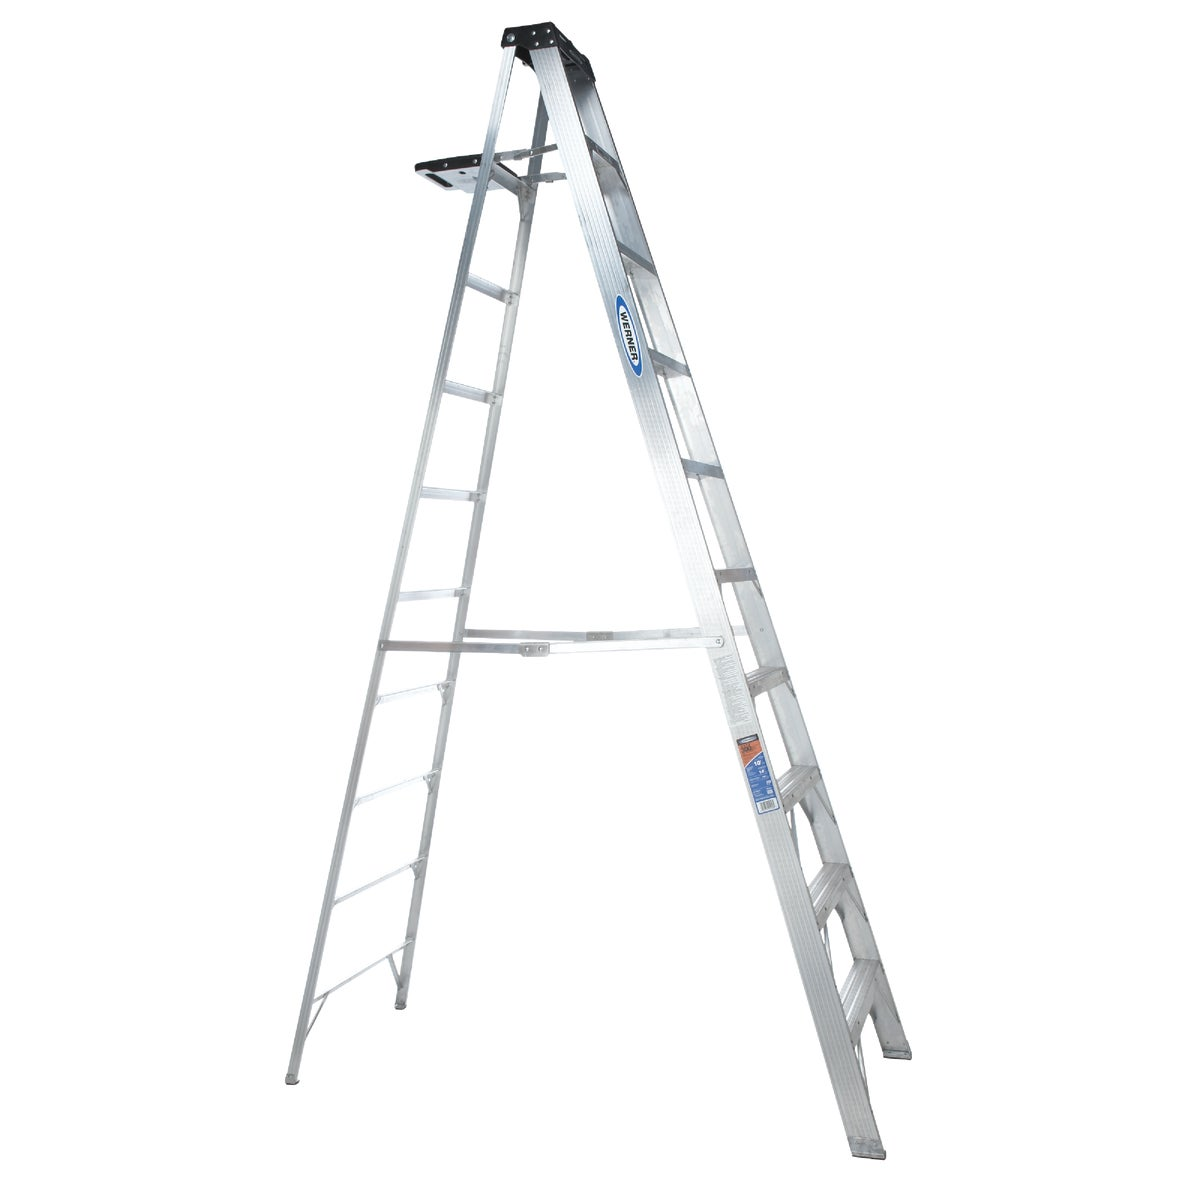 T-1A 10' ALUM STEPLADDER - 310 by Werner Ladder